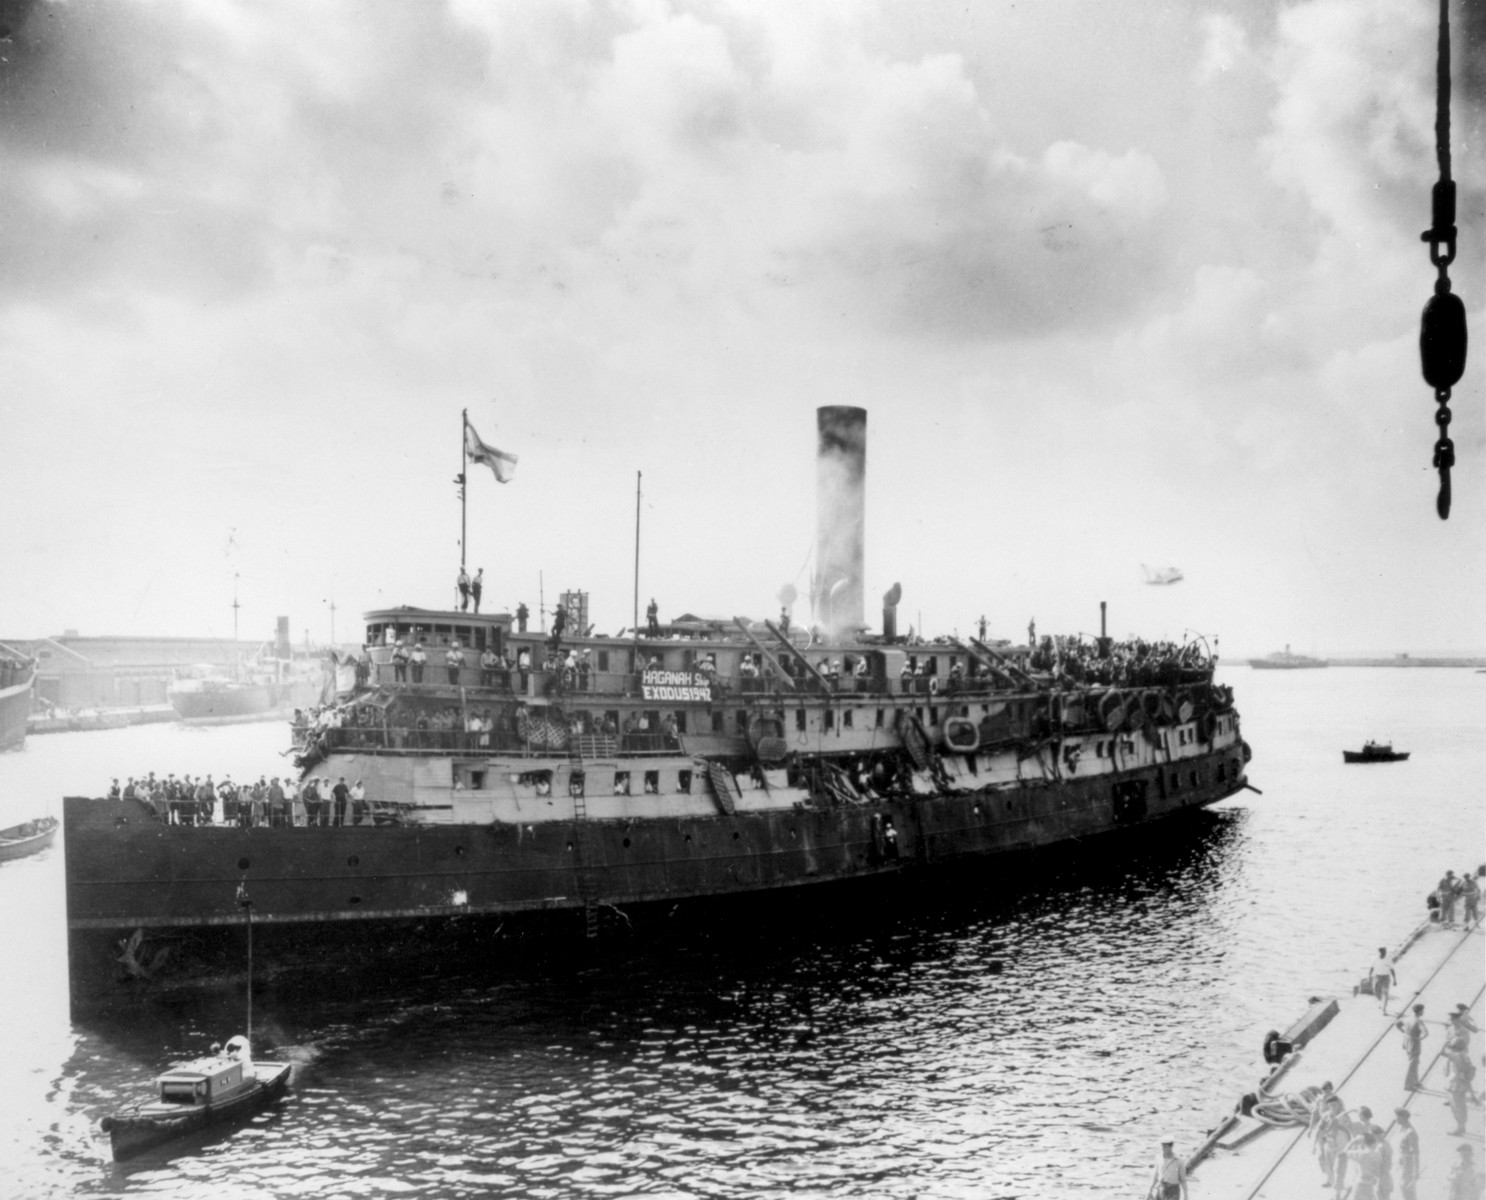 View of the damaged Exodus 1947 illegal immigrant ship as it is being towed into the port of Haifa, after its interception by the British navy.